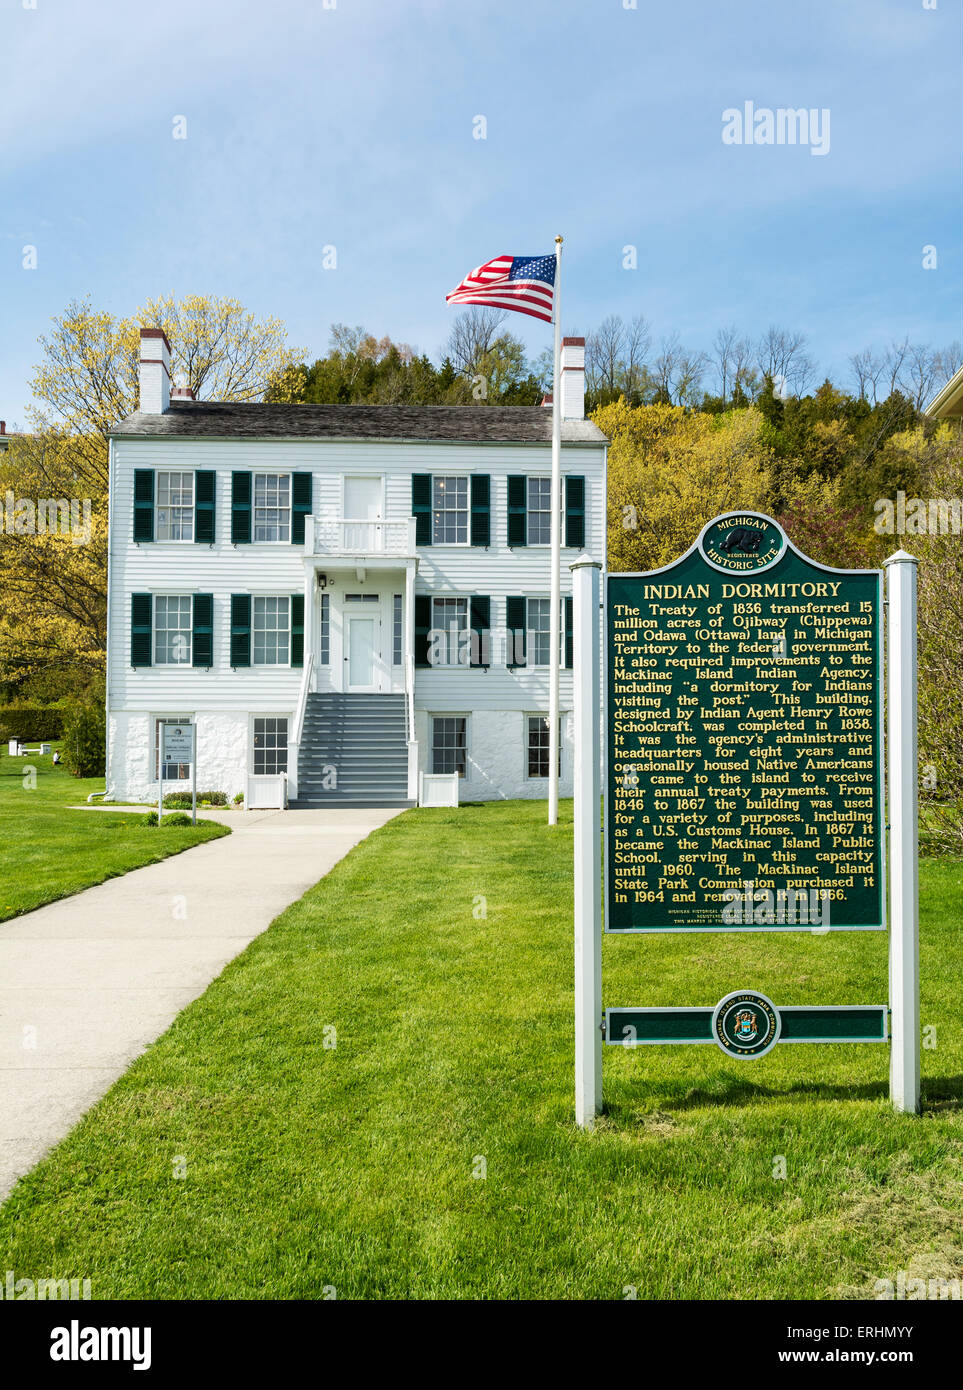 Michigan, Mackinac Island, The Richrad and Jane Manoogian Mackinac Art Museum located in former Indian Dormitory - Stock Image